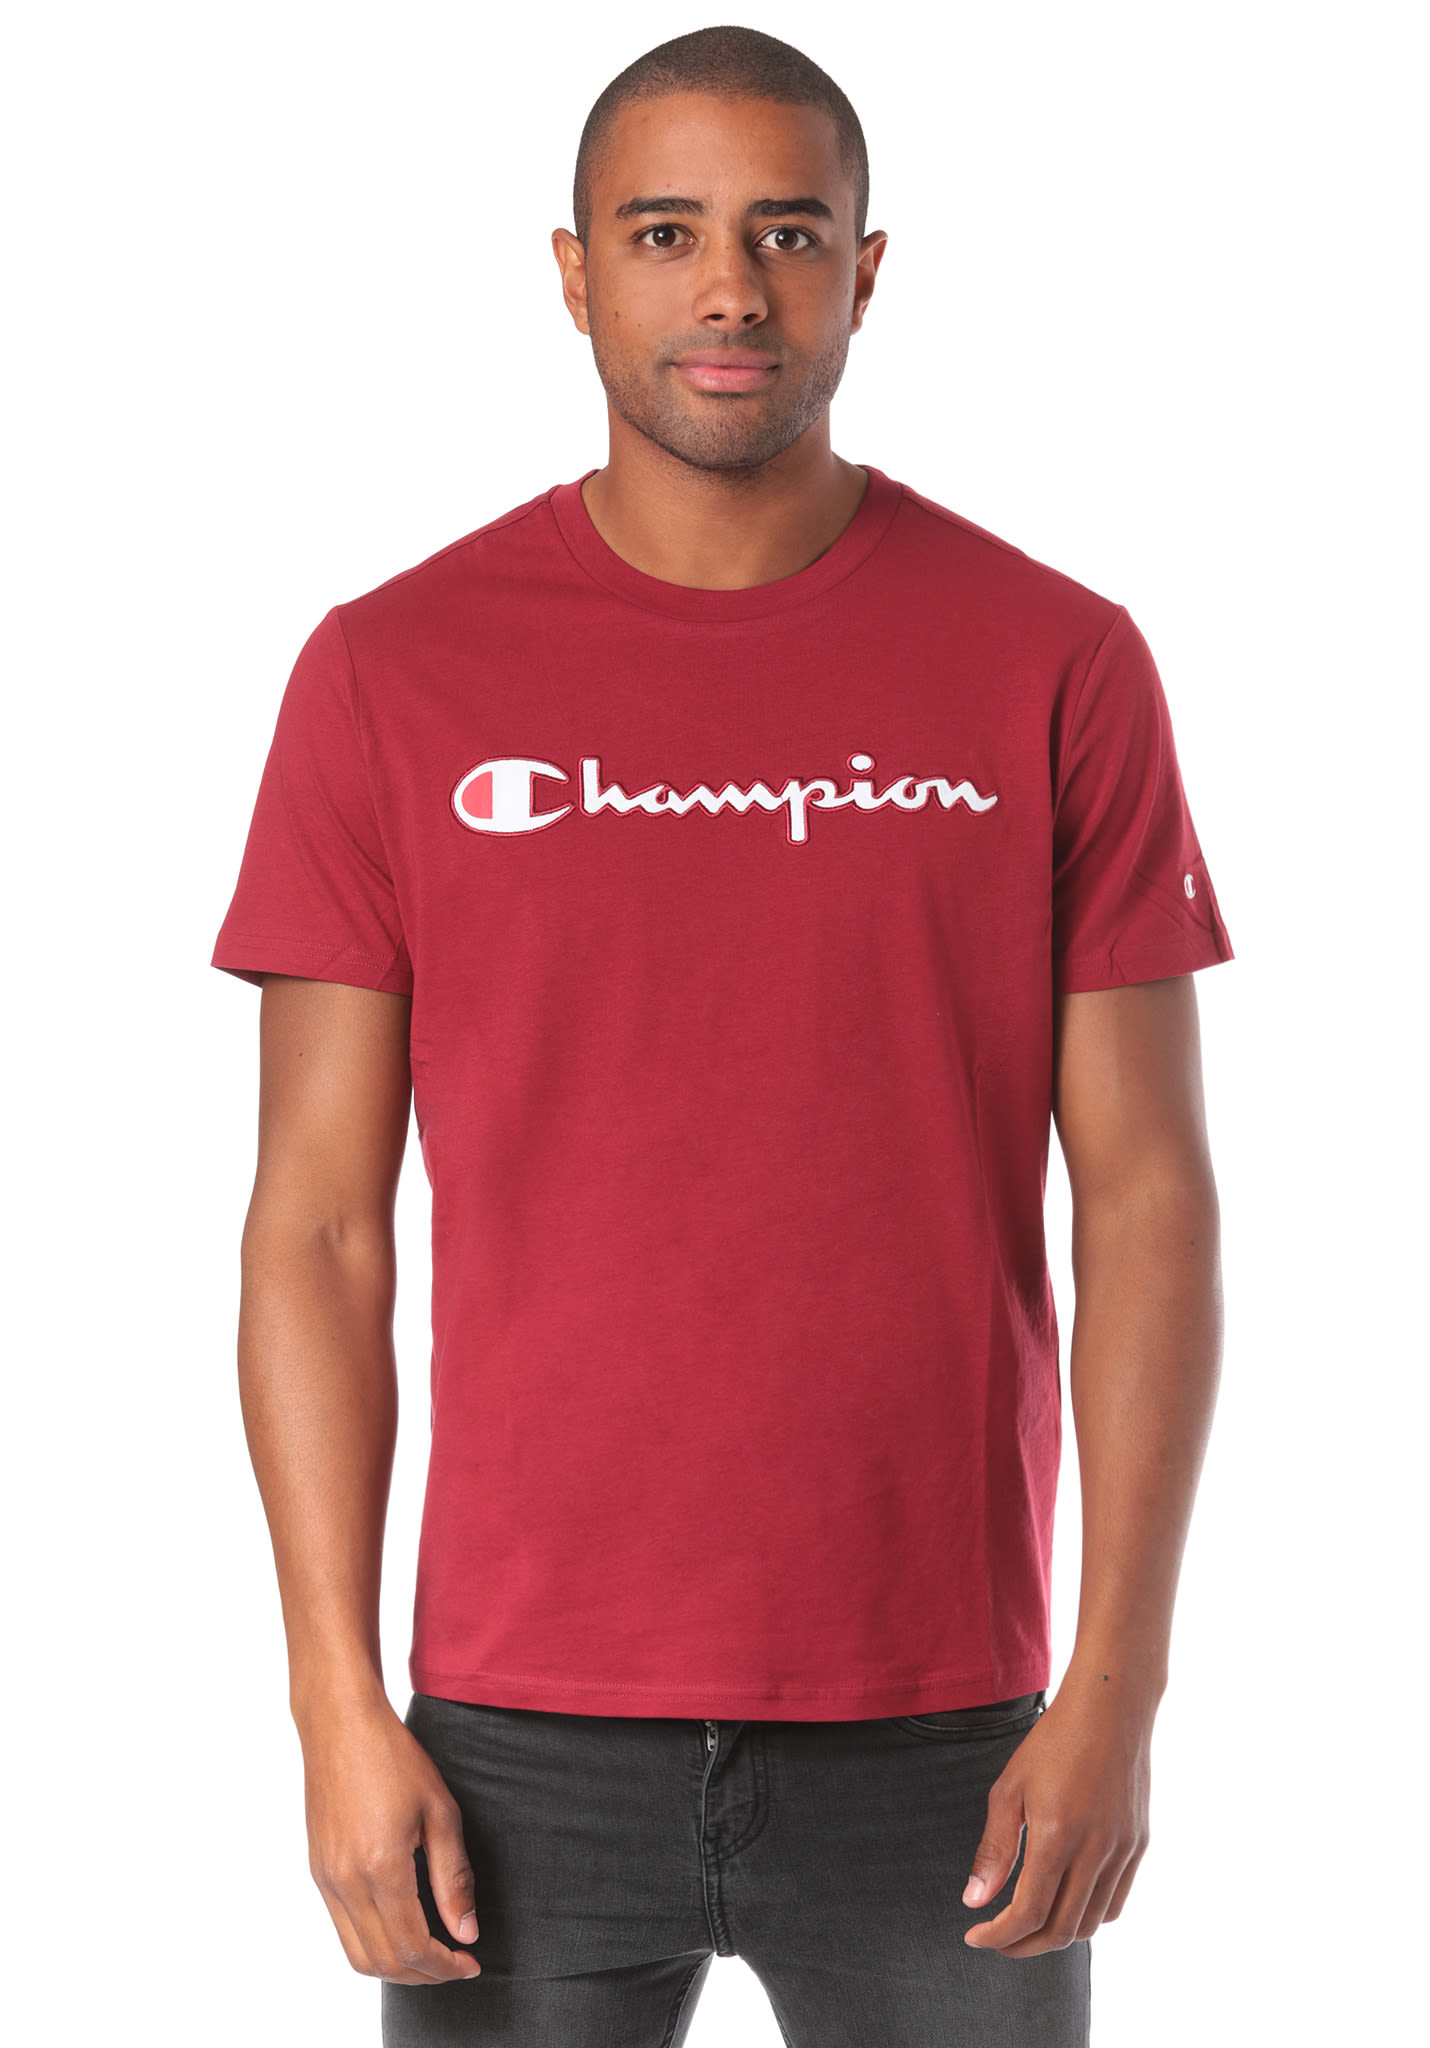 f150154e74fa Champion Crewneck - T-Shirt for Men - Red - Planet Sports